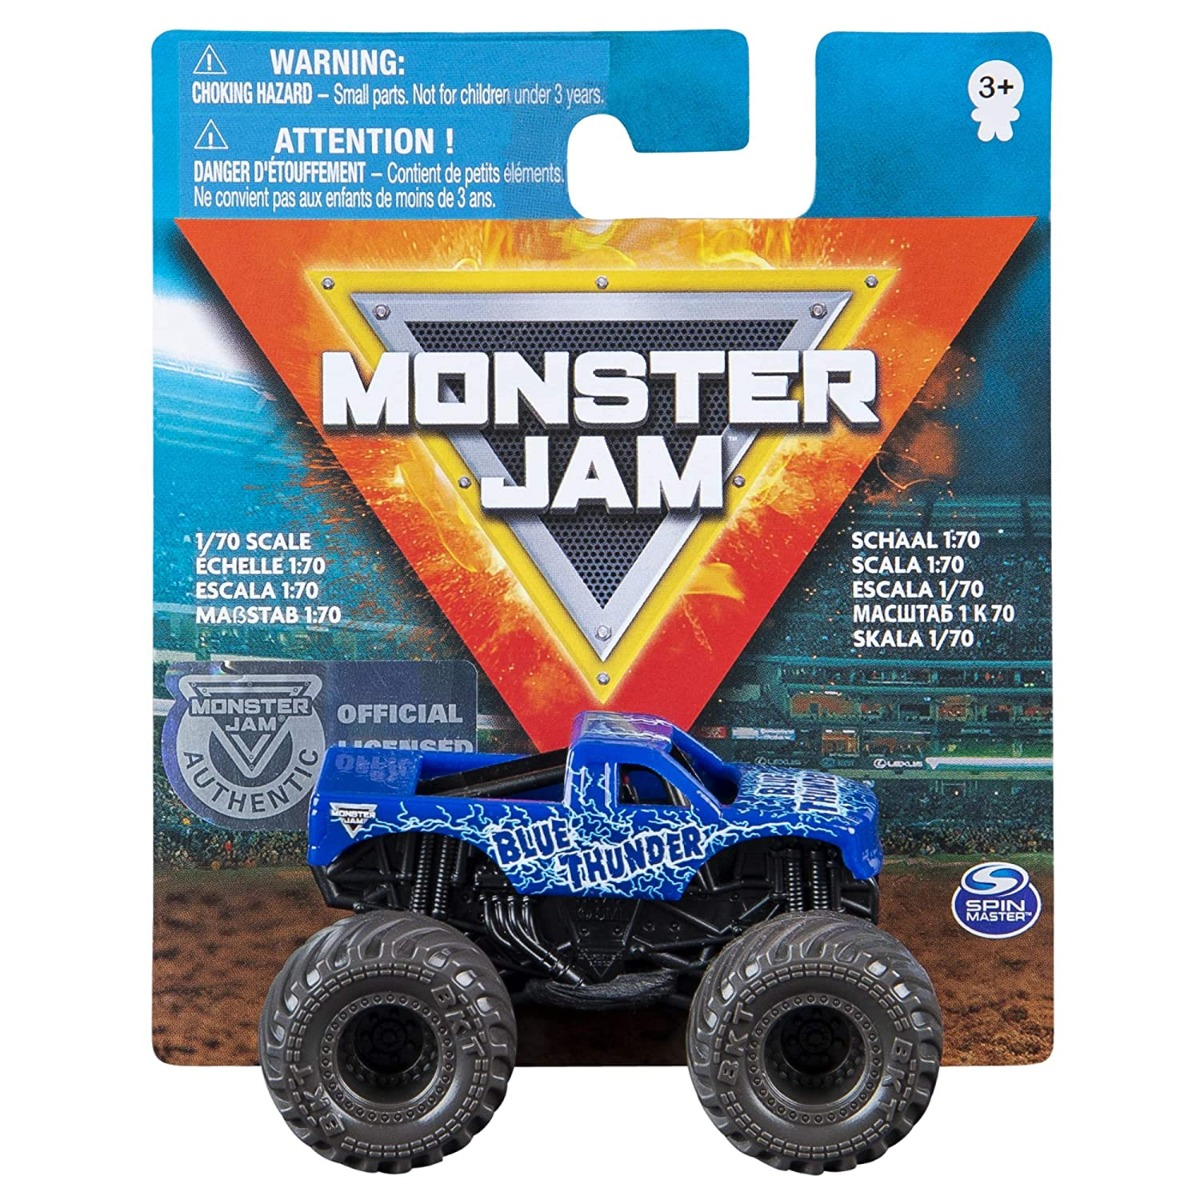 Masinuta Monster Jam 1:70, Blue Thunder, 20120611